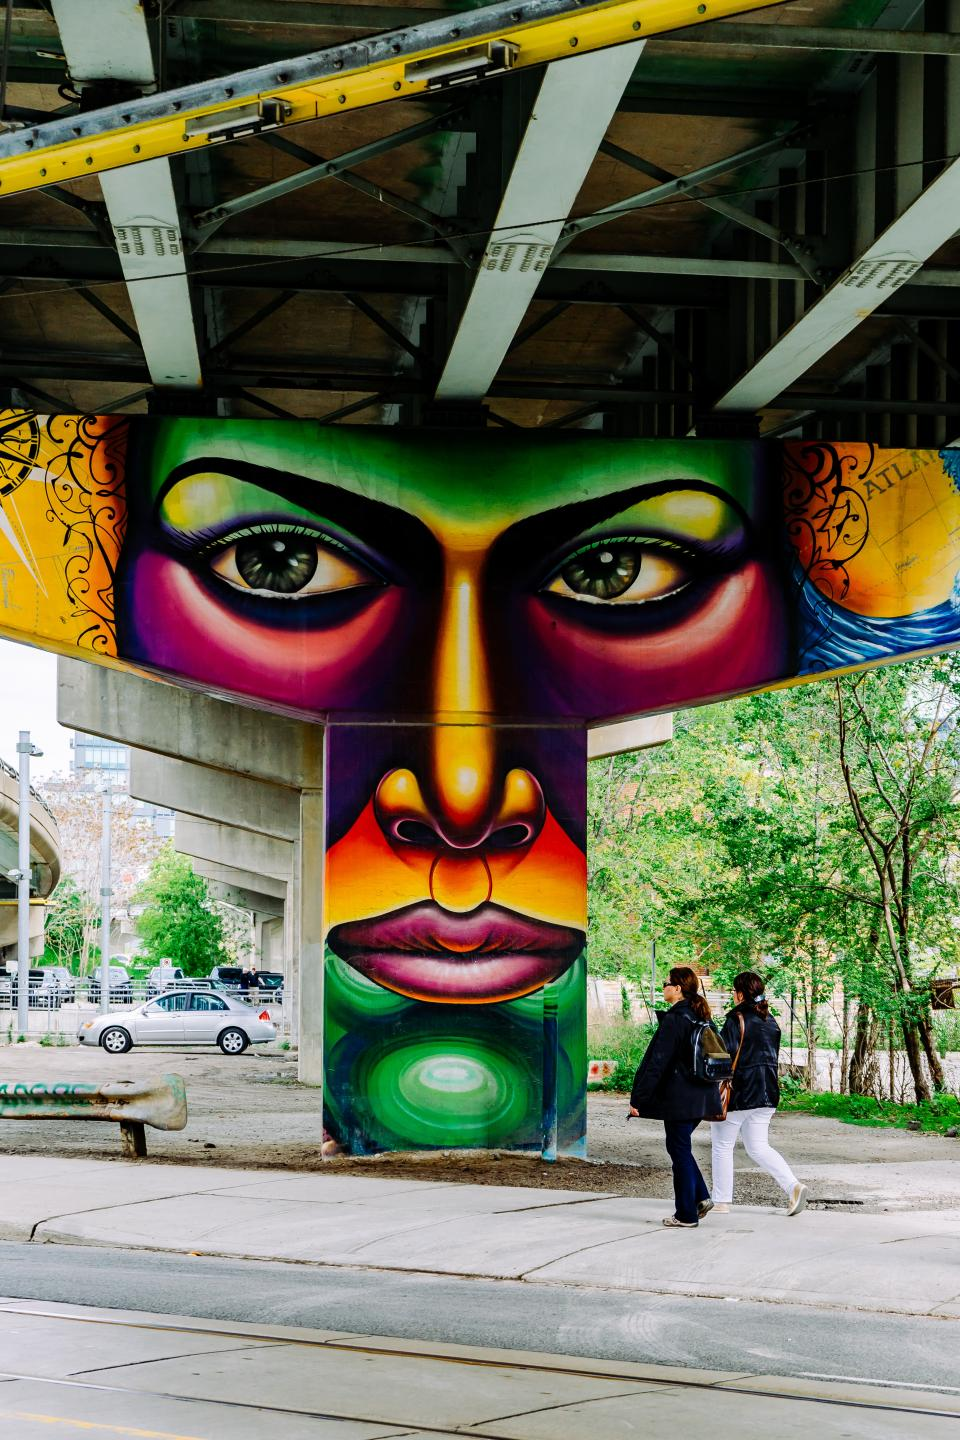 public bridge infrastructure wall street art mural painting graffiti people walking outdoor trees plants